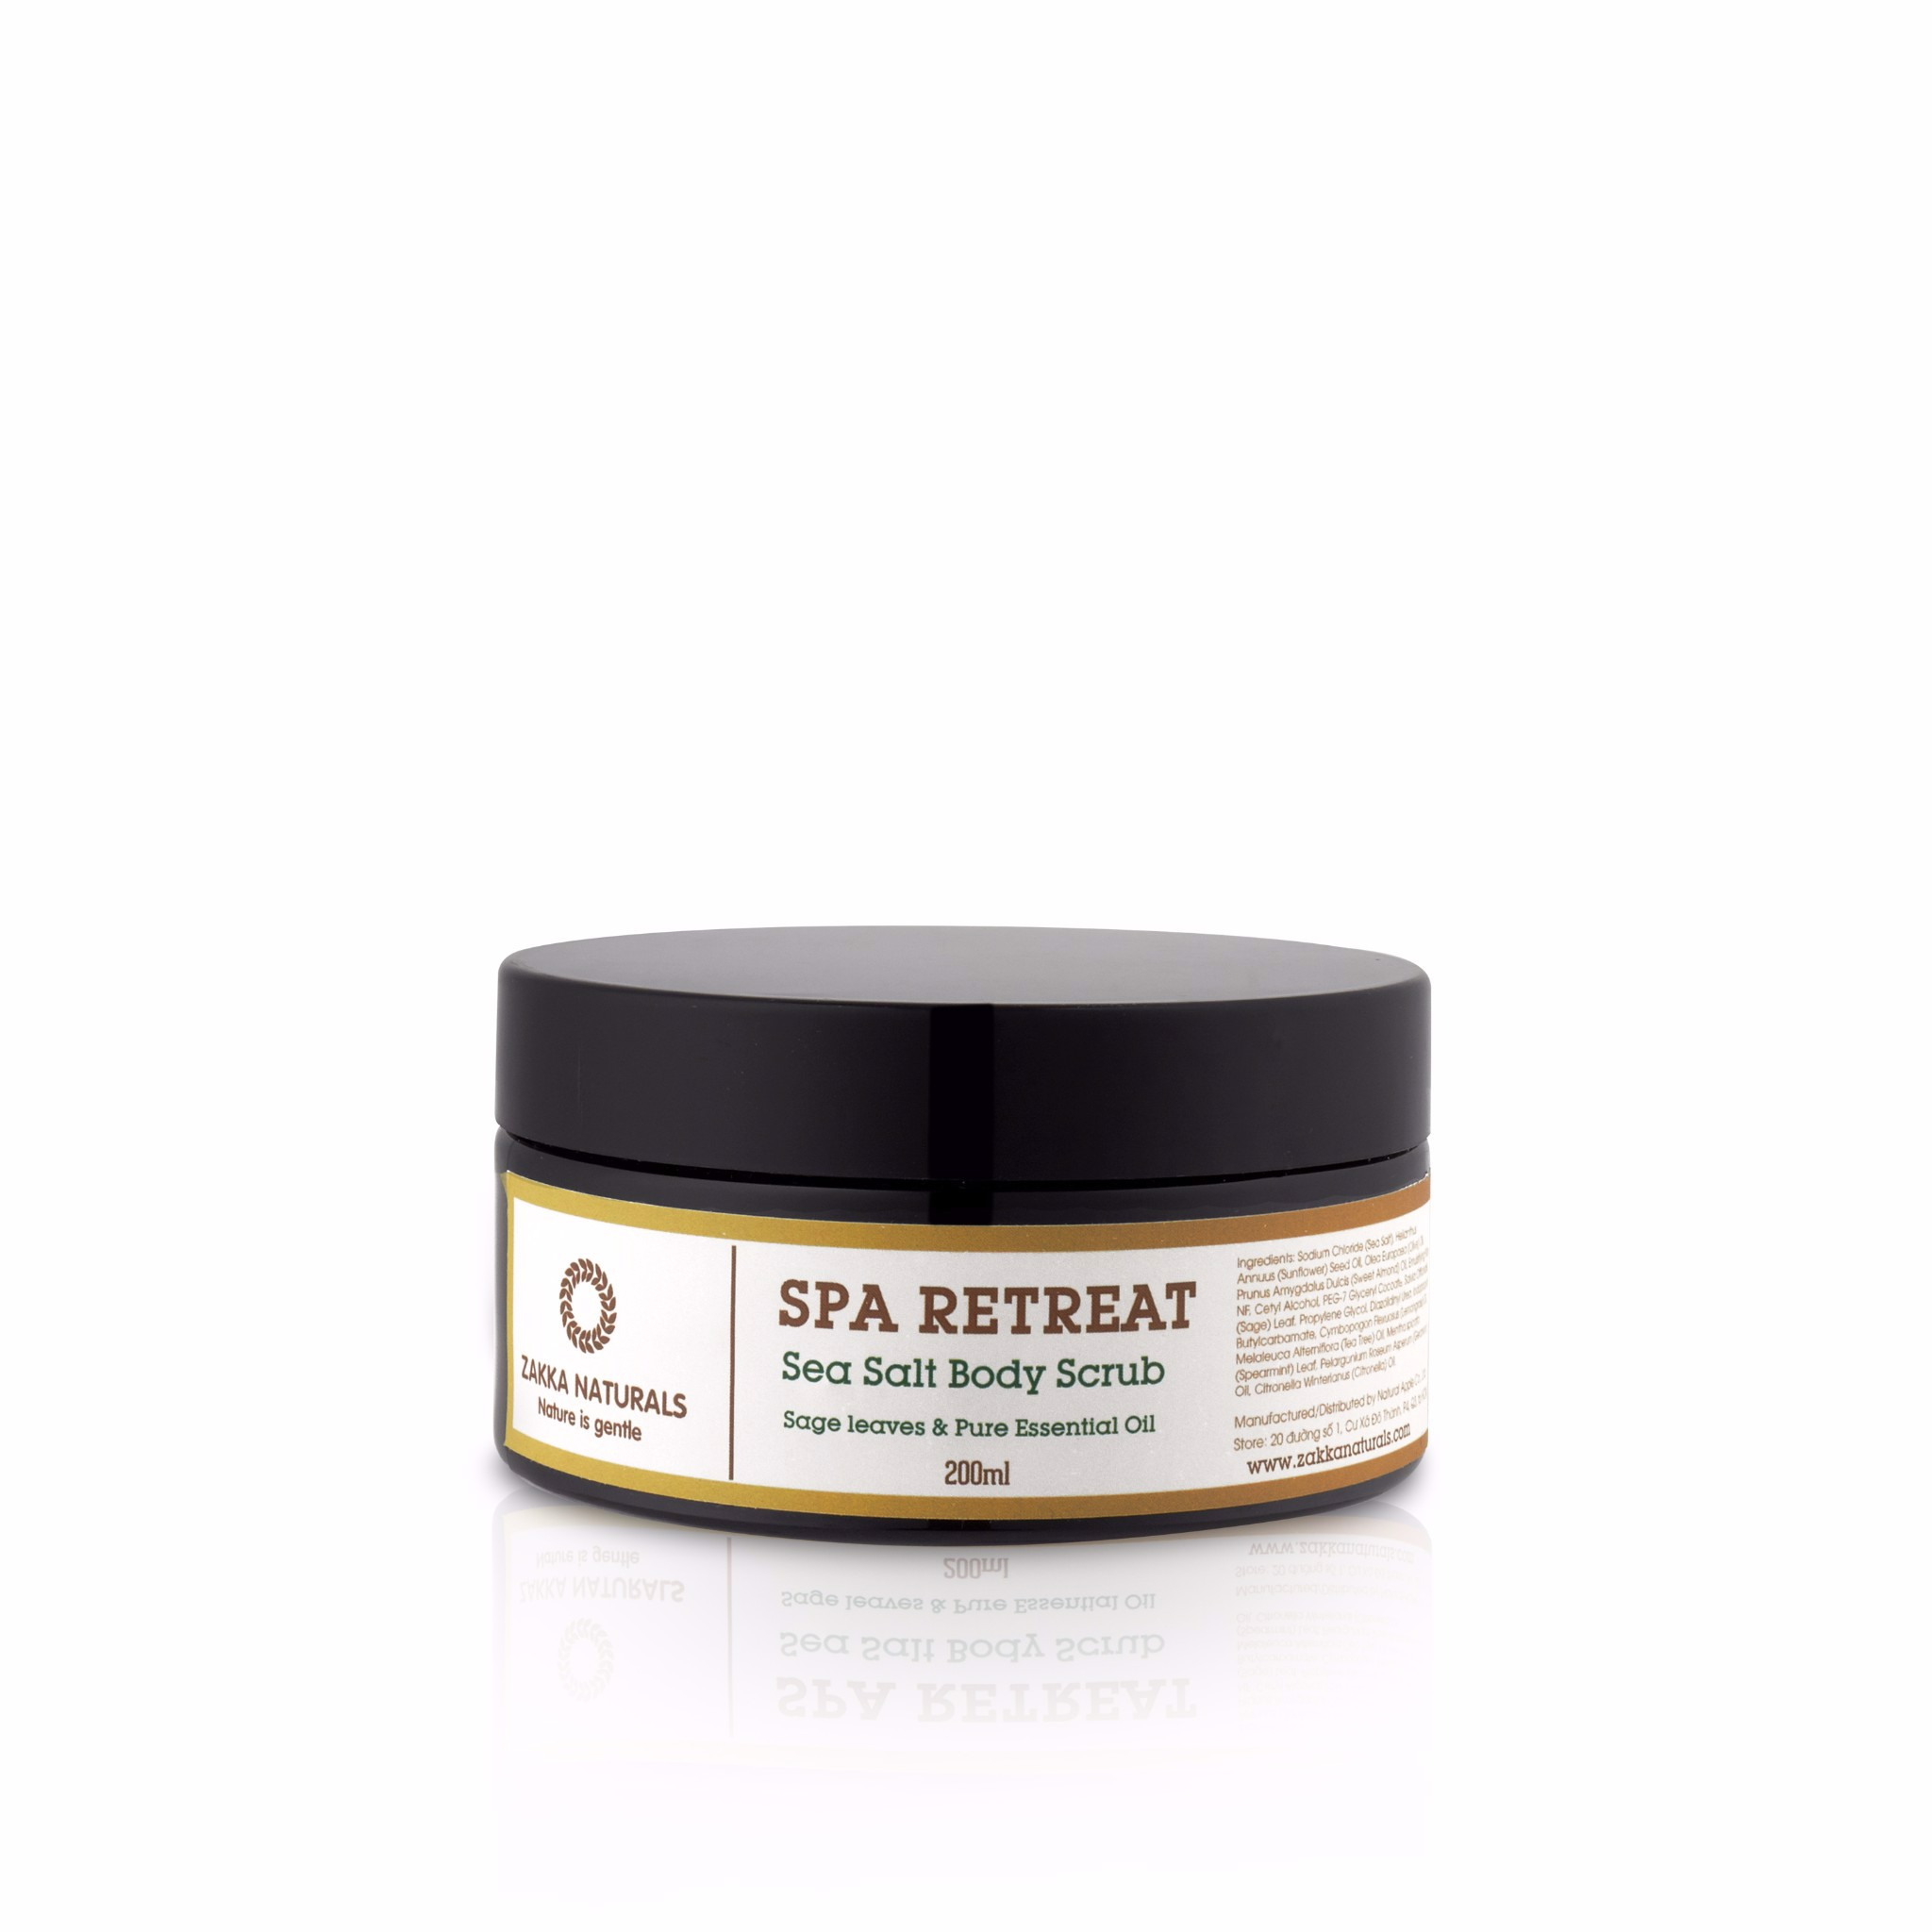 Spa Retreat Sea Salt Body Salt Scrub